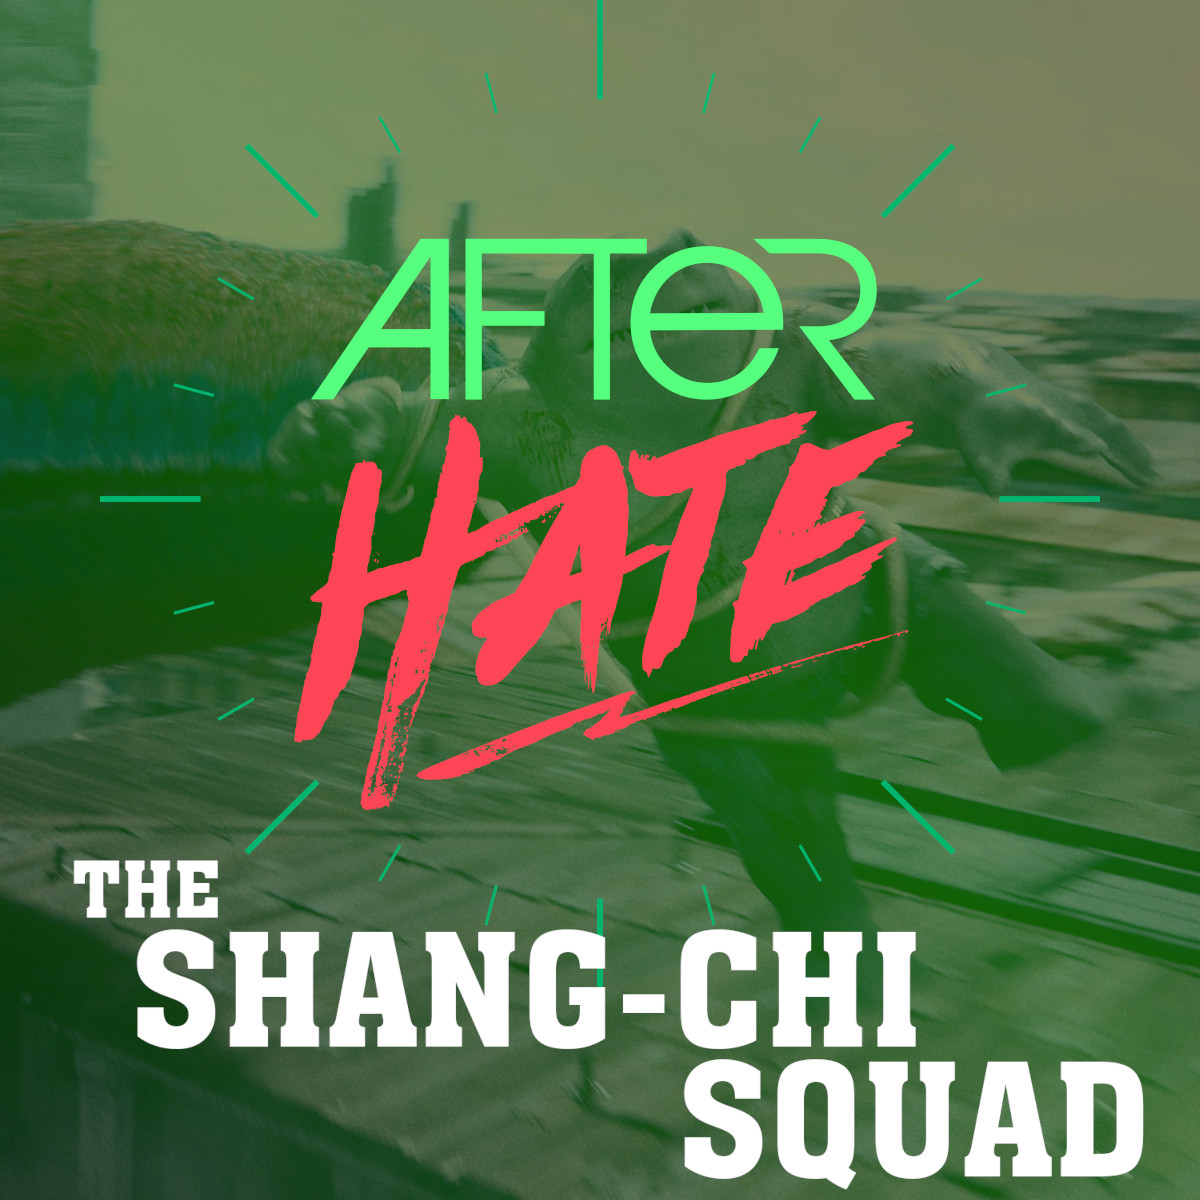 Episode 135 : The Shang-Chi Squad